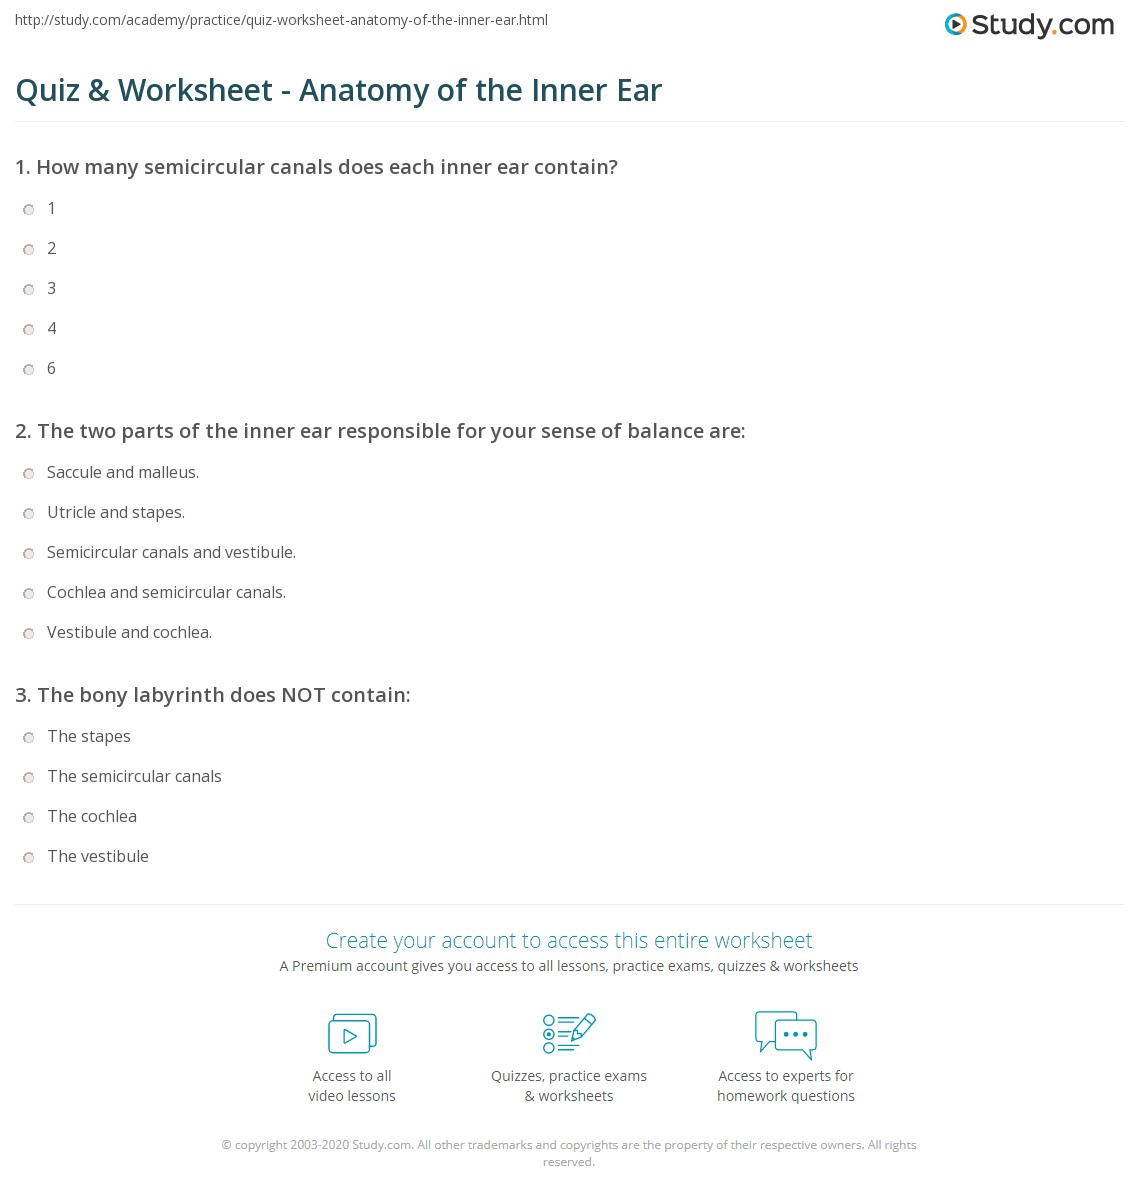 Quiz & Worksheet - Anatomy of the Inner Ear | Study.com